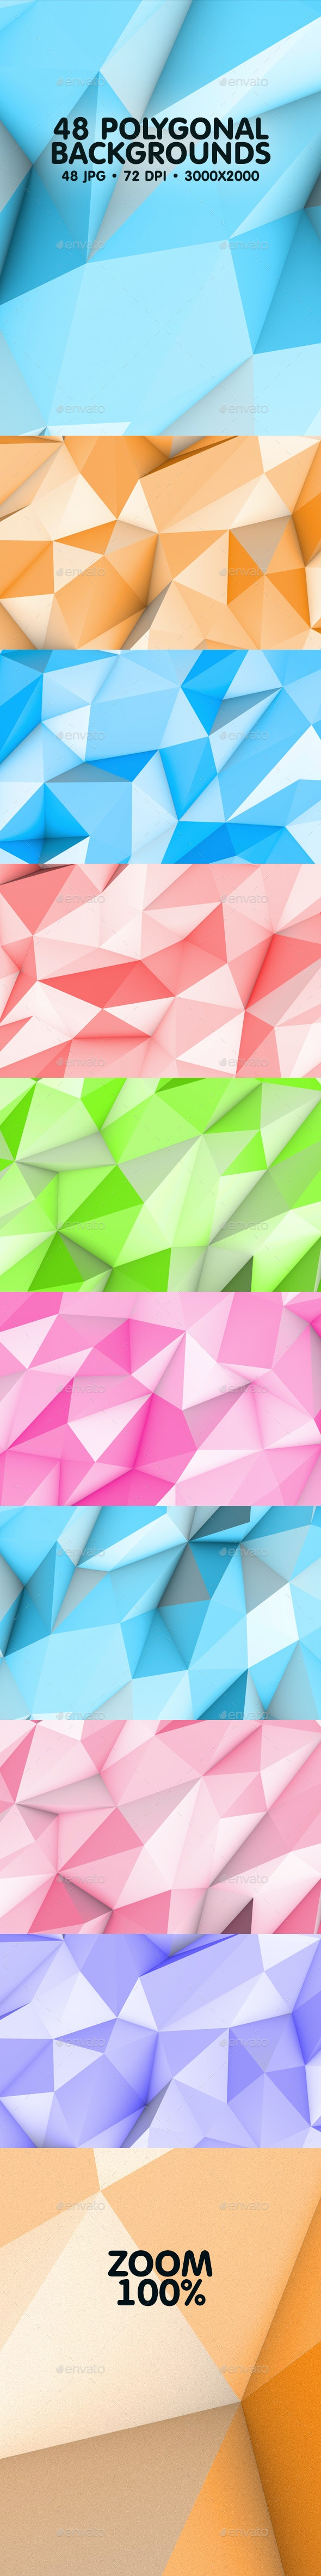 48 Polygonal Backgrounds - Backgrounds Graphics